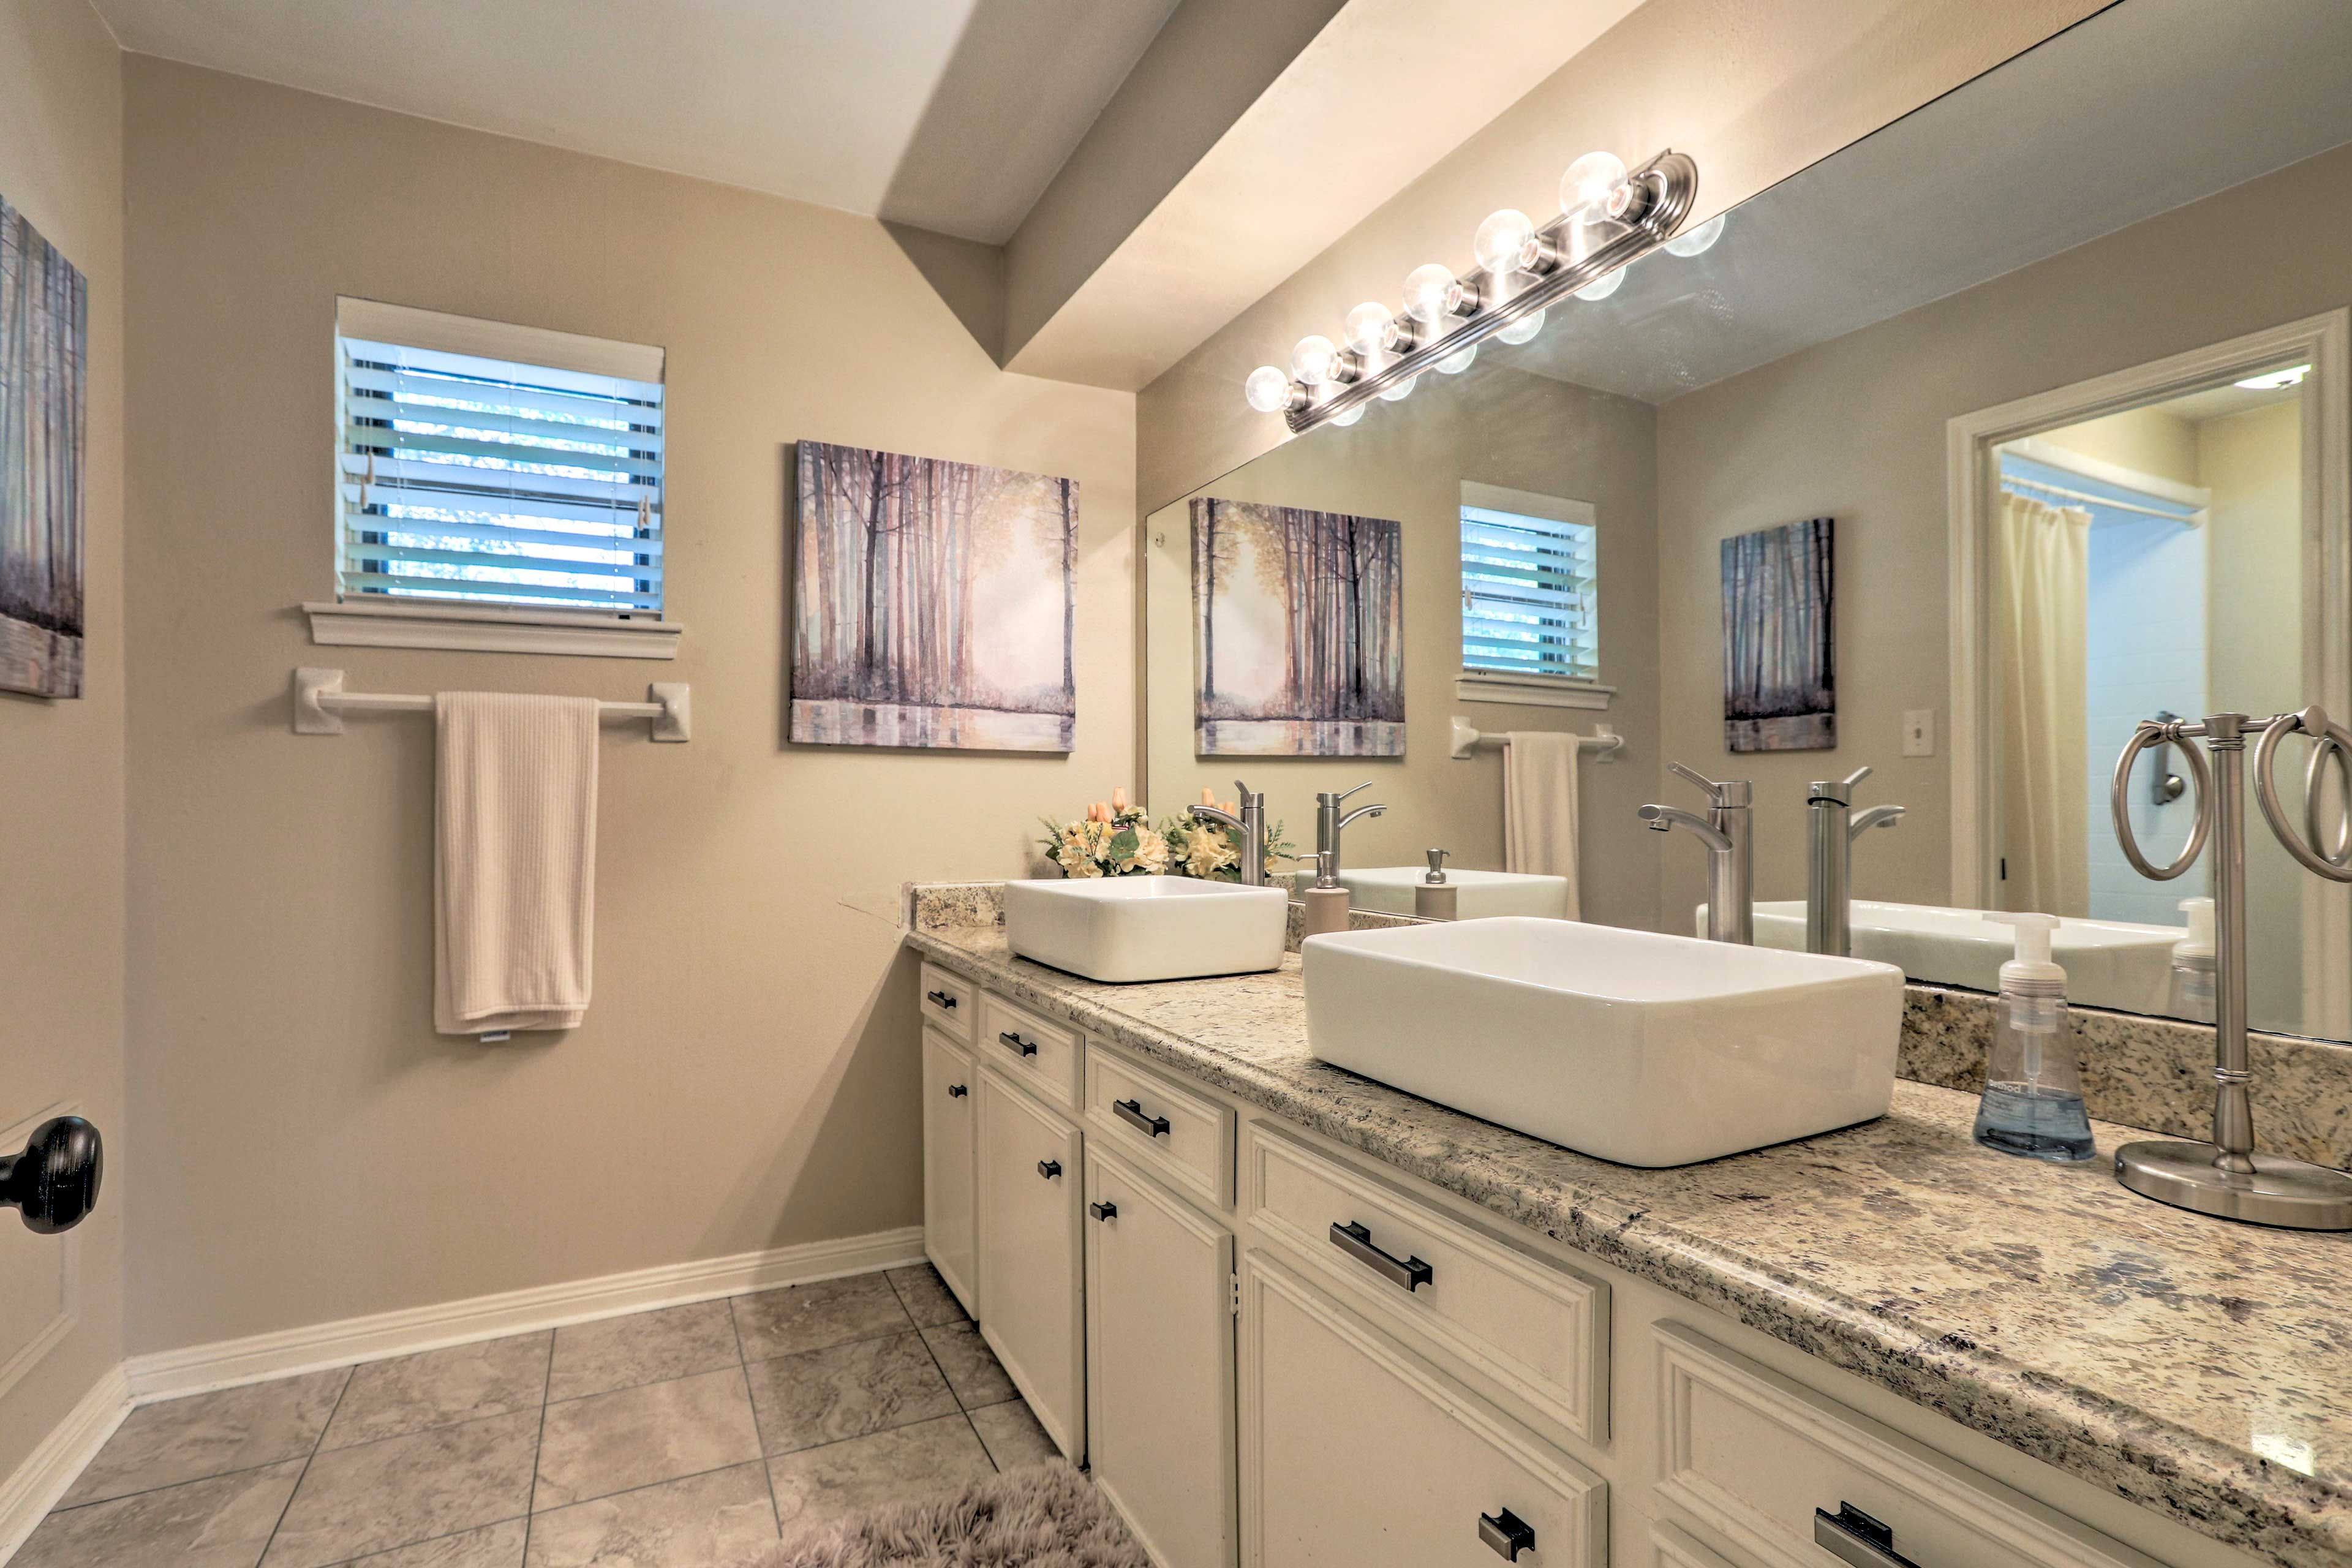 This bathroom includes a large vanity with double sinks.